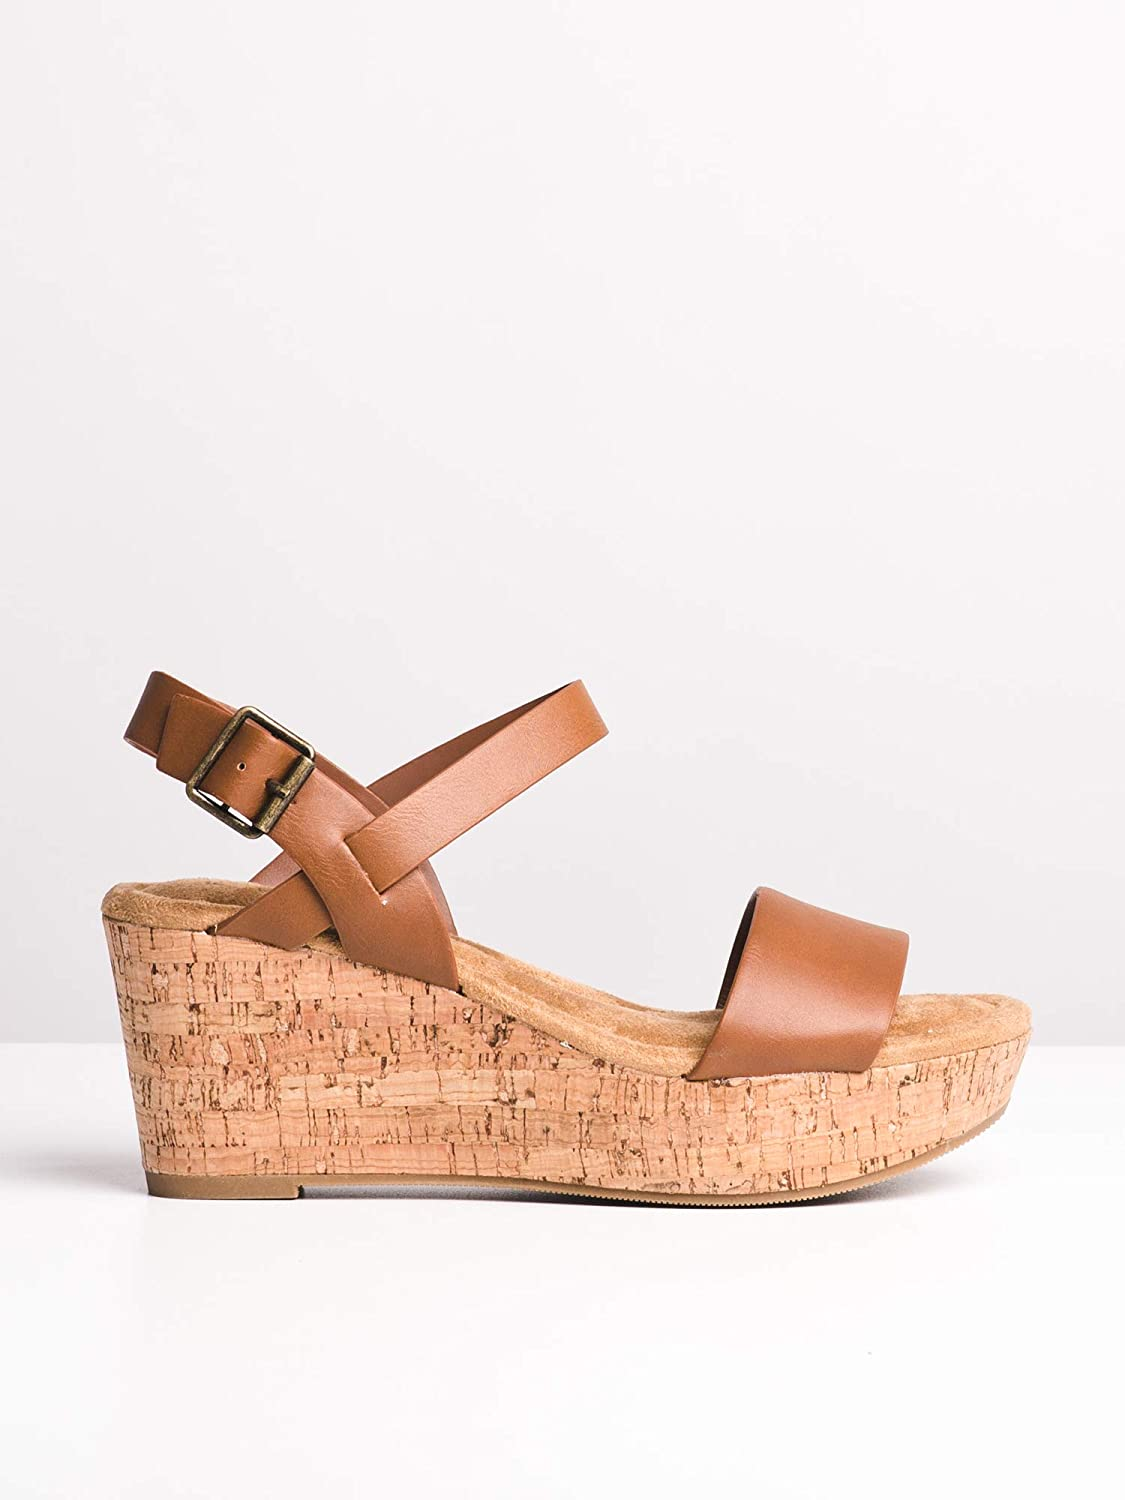 DLG Womens Air Casual Wedge Sandals with Cork